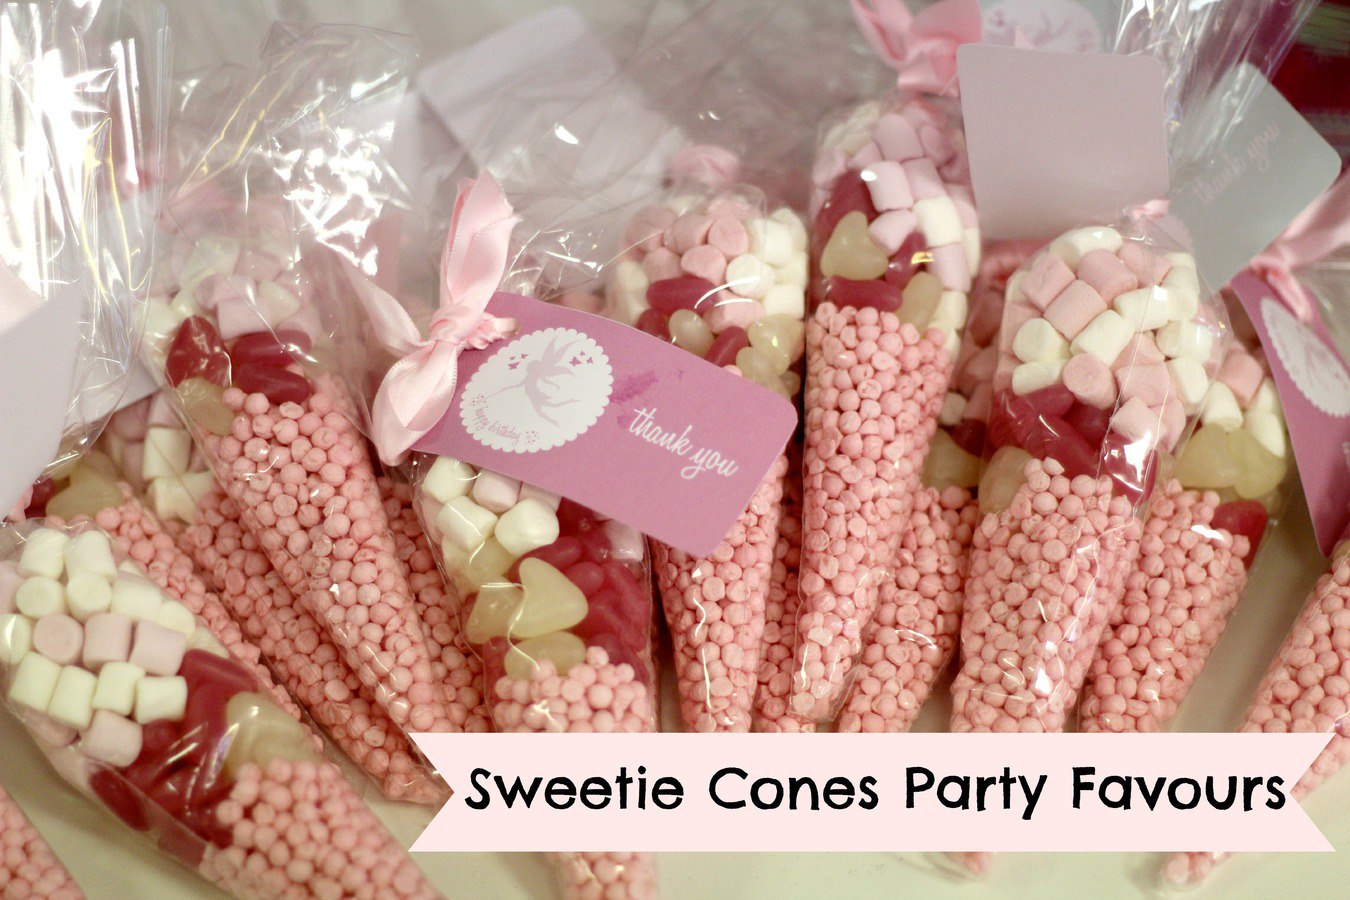 sweetie cones party favours